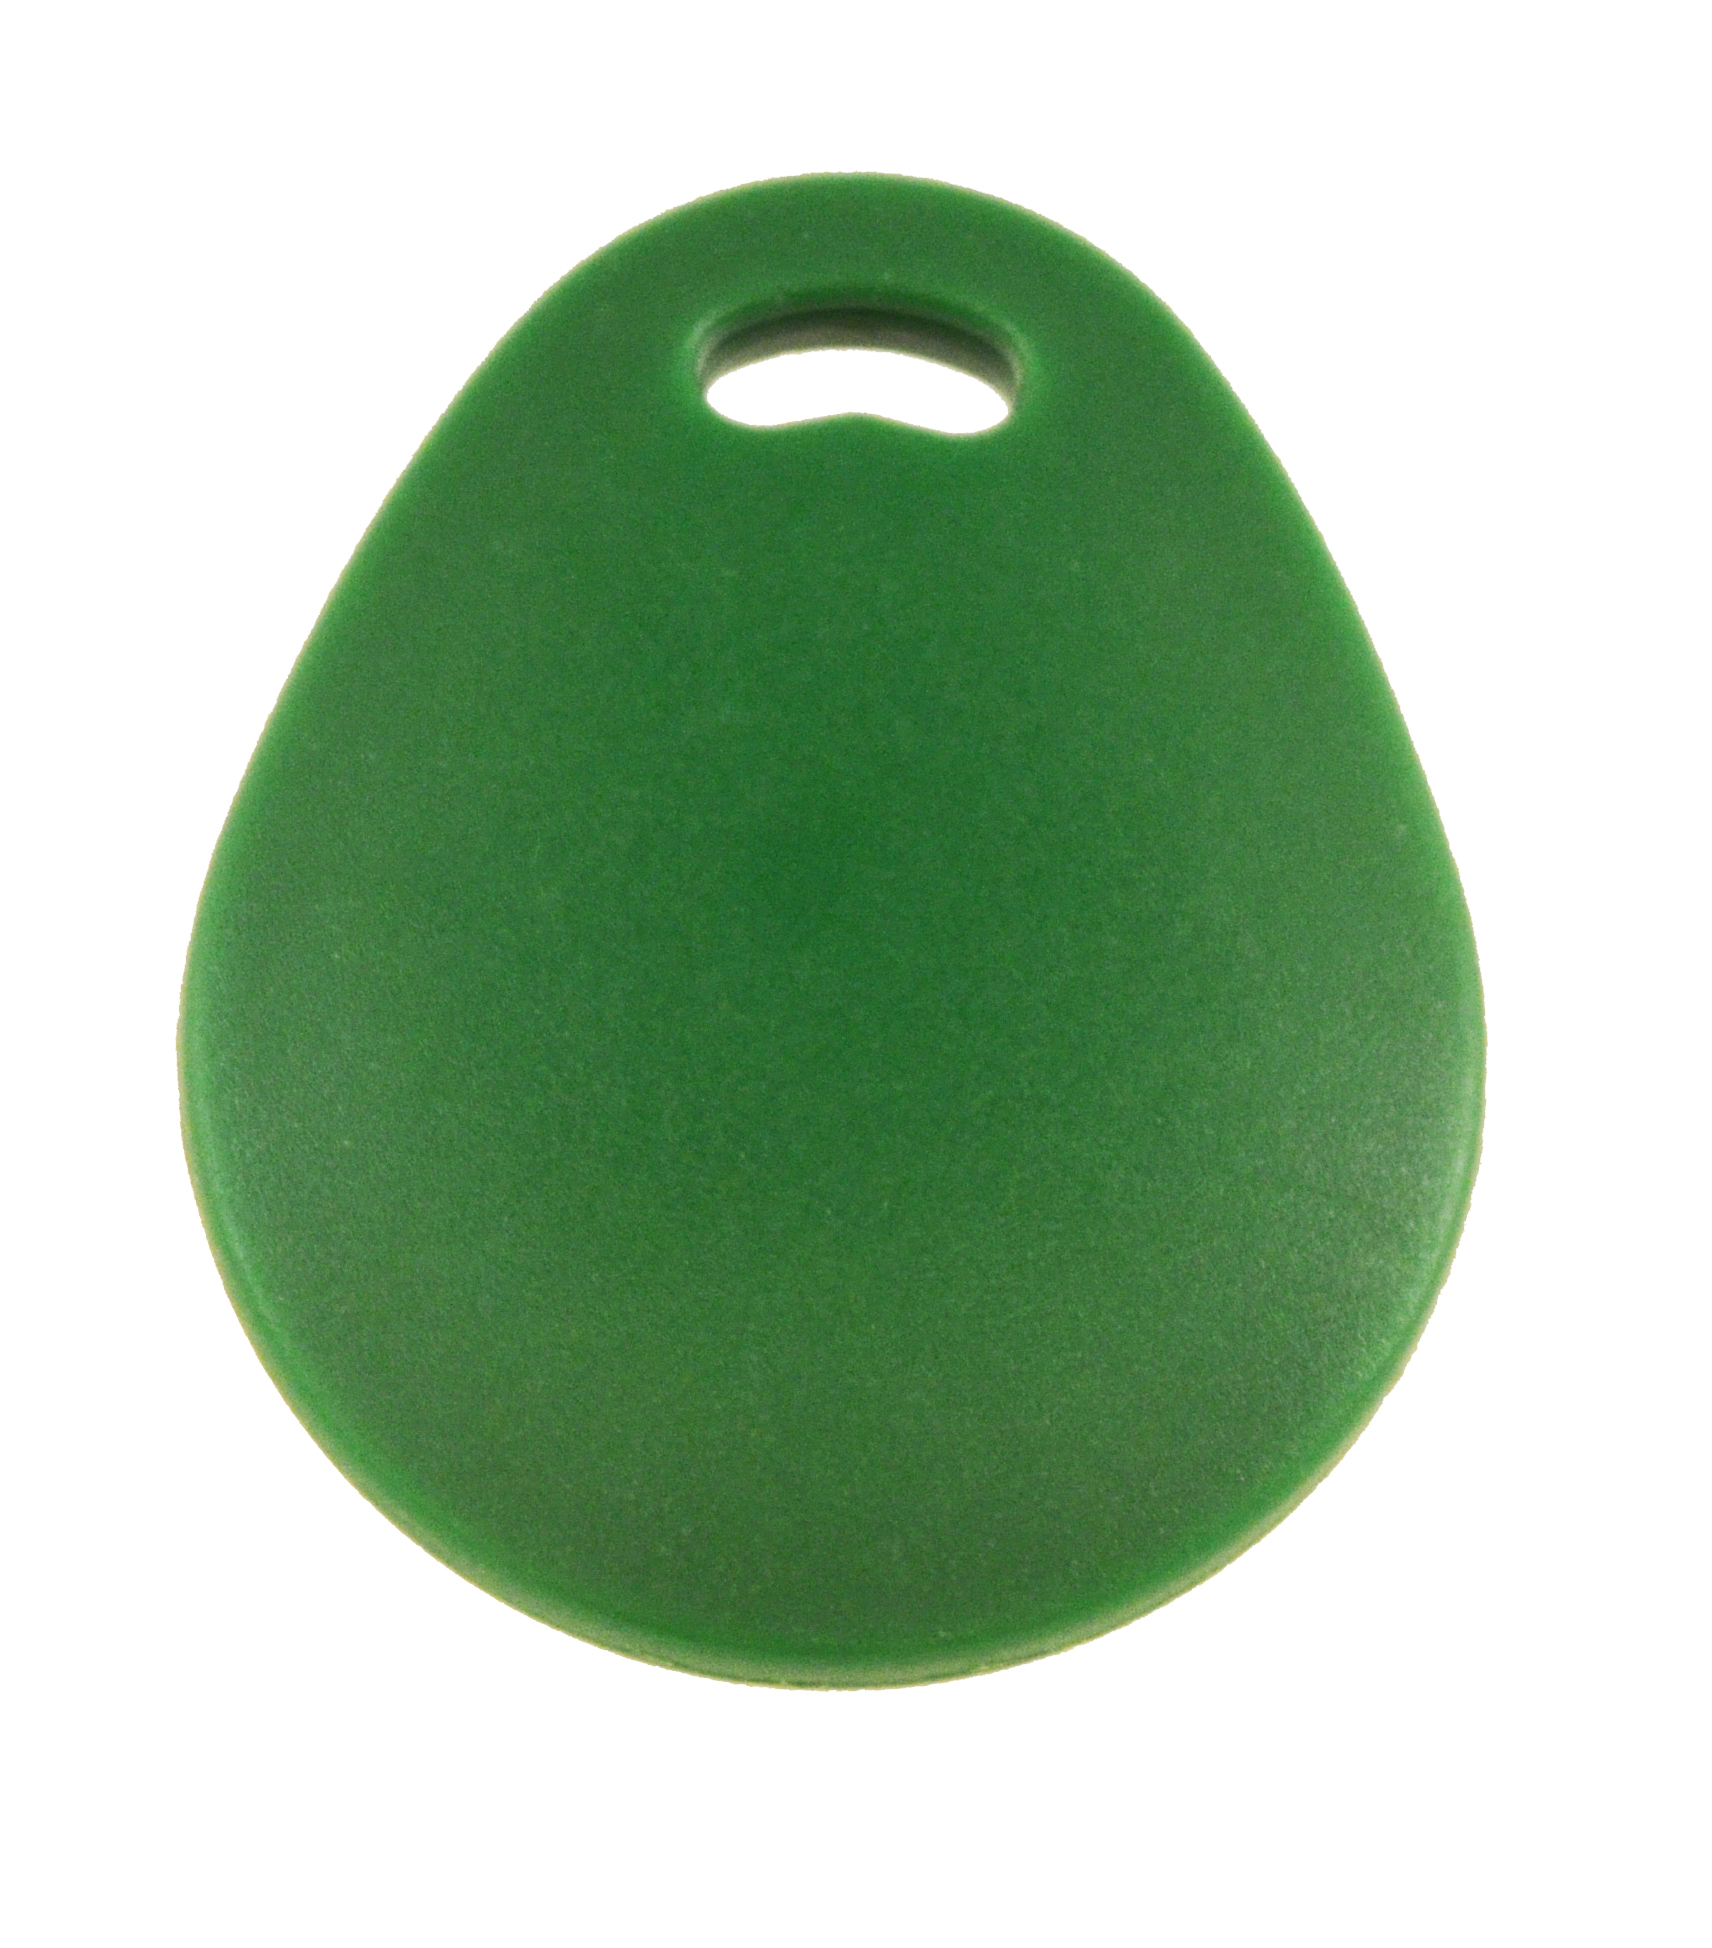 Keyfob Drop green